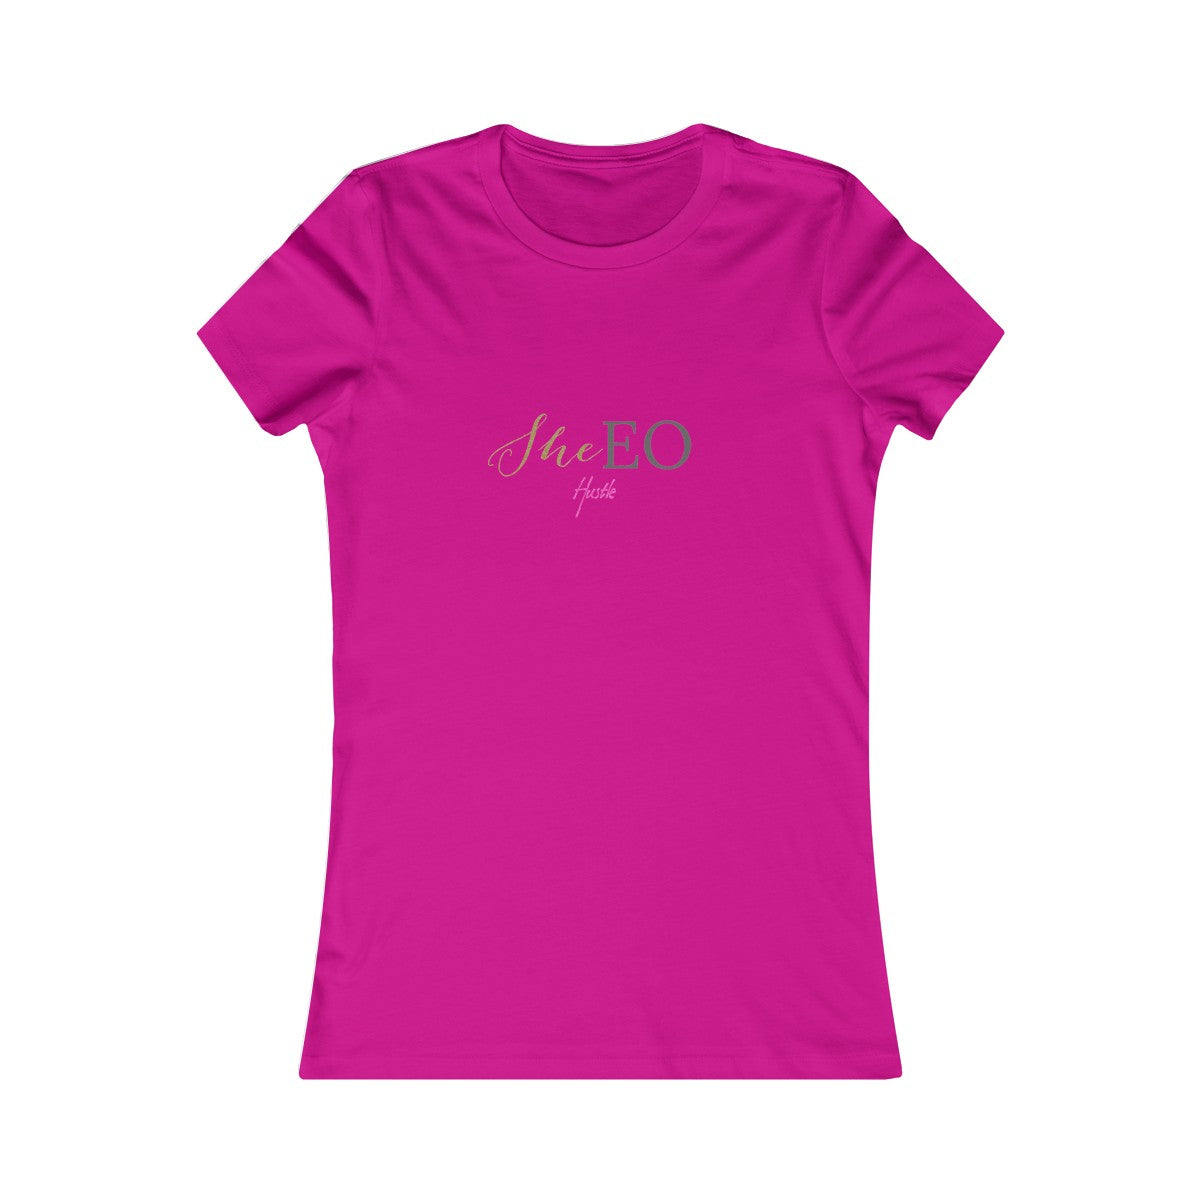 """SheEo Hustle"" Women's Favorite Tee by SheEo Collection"